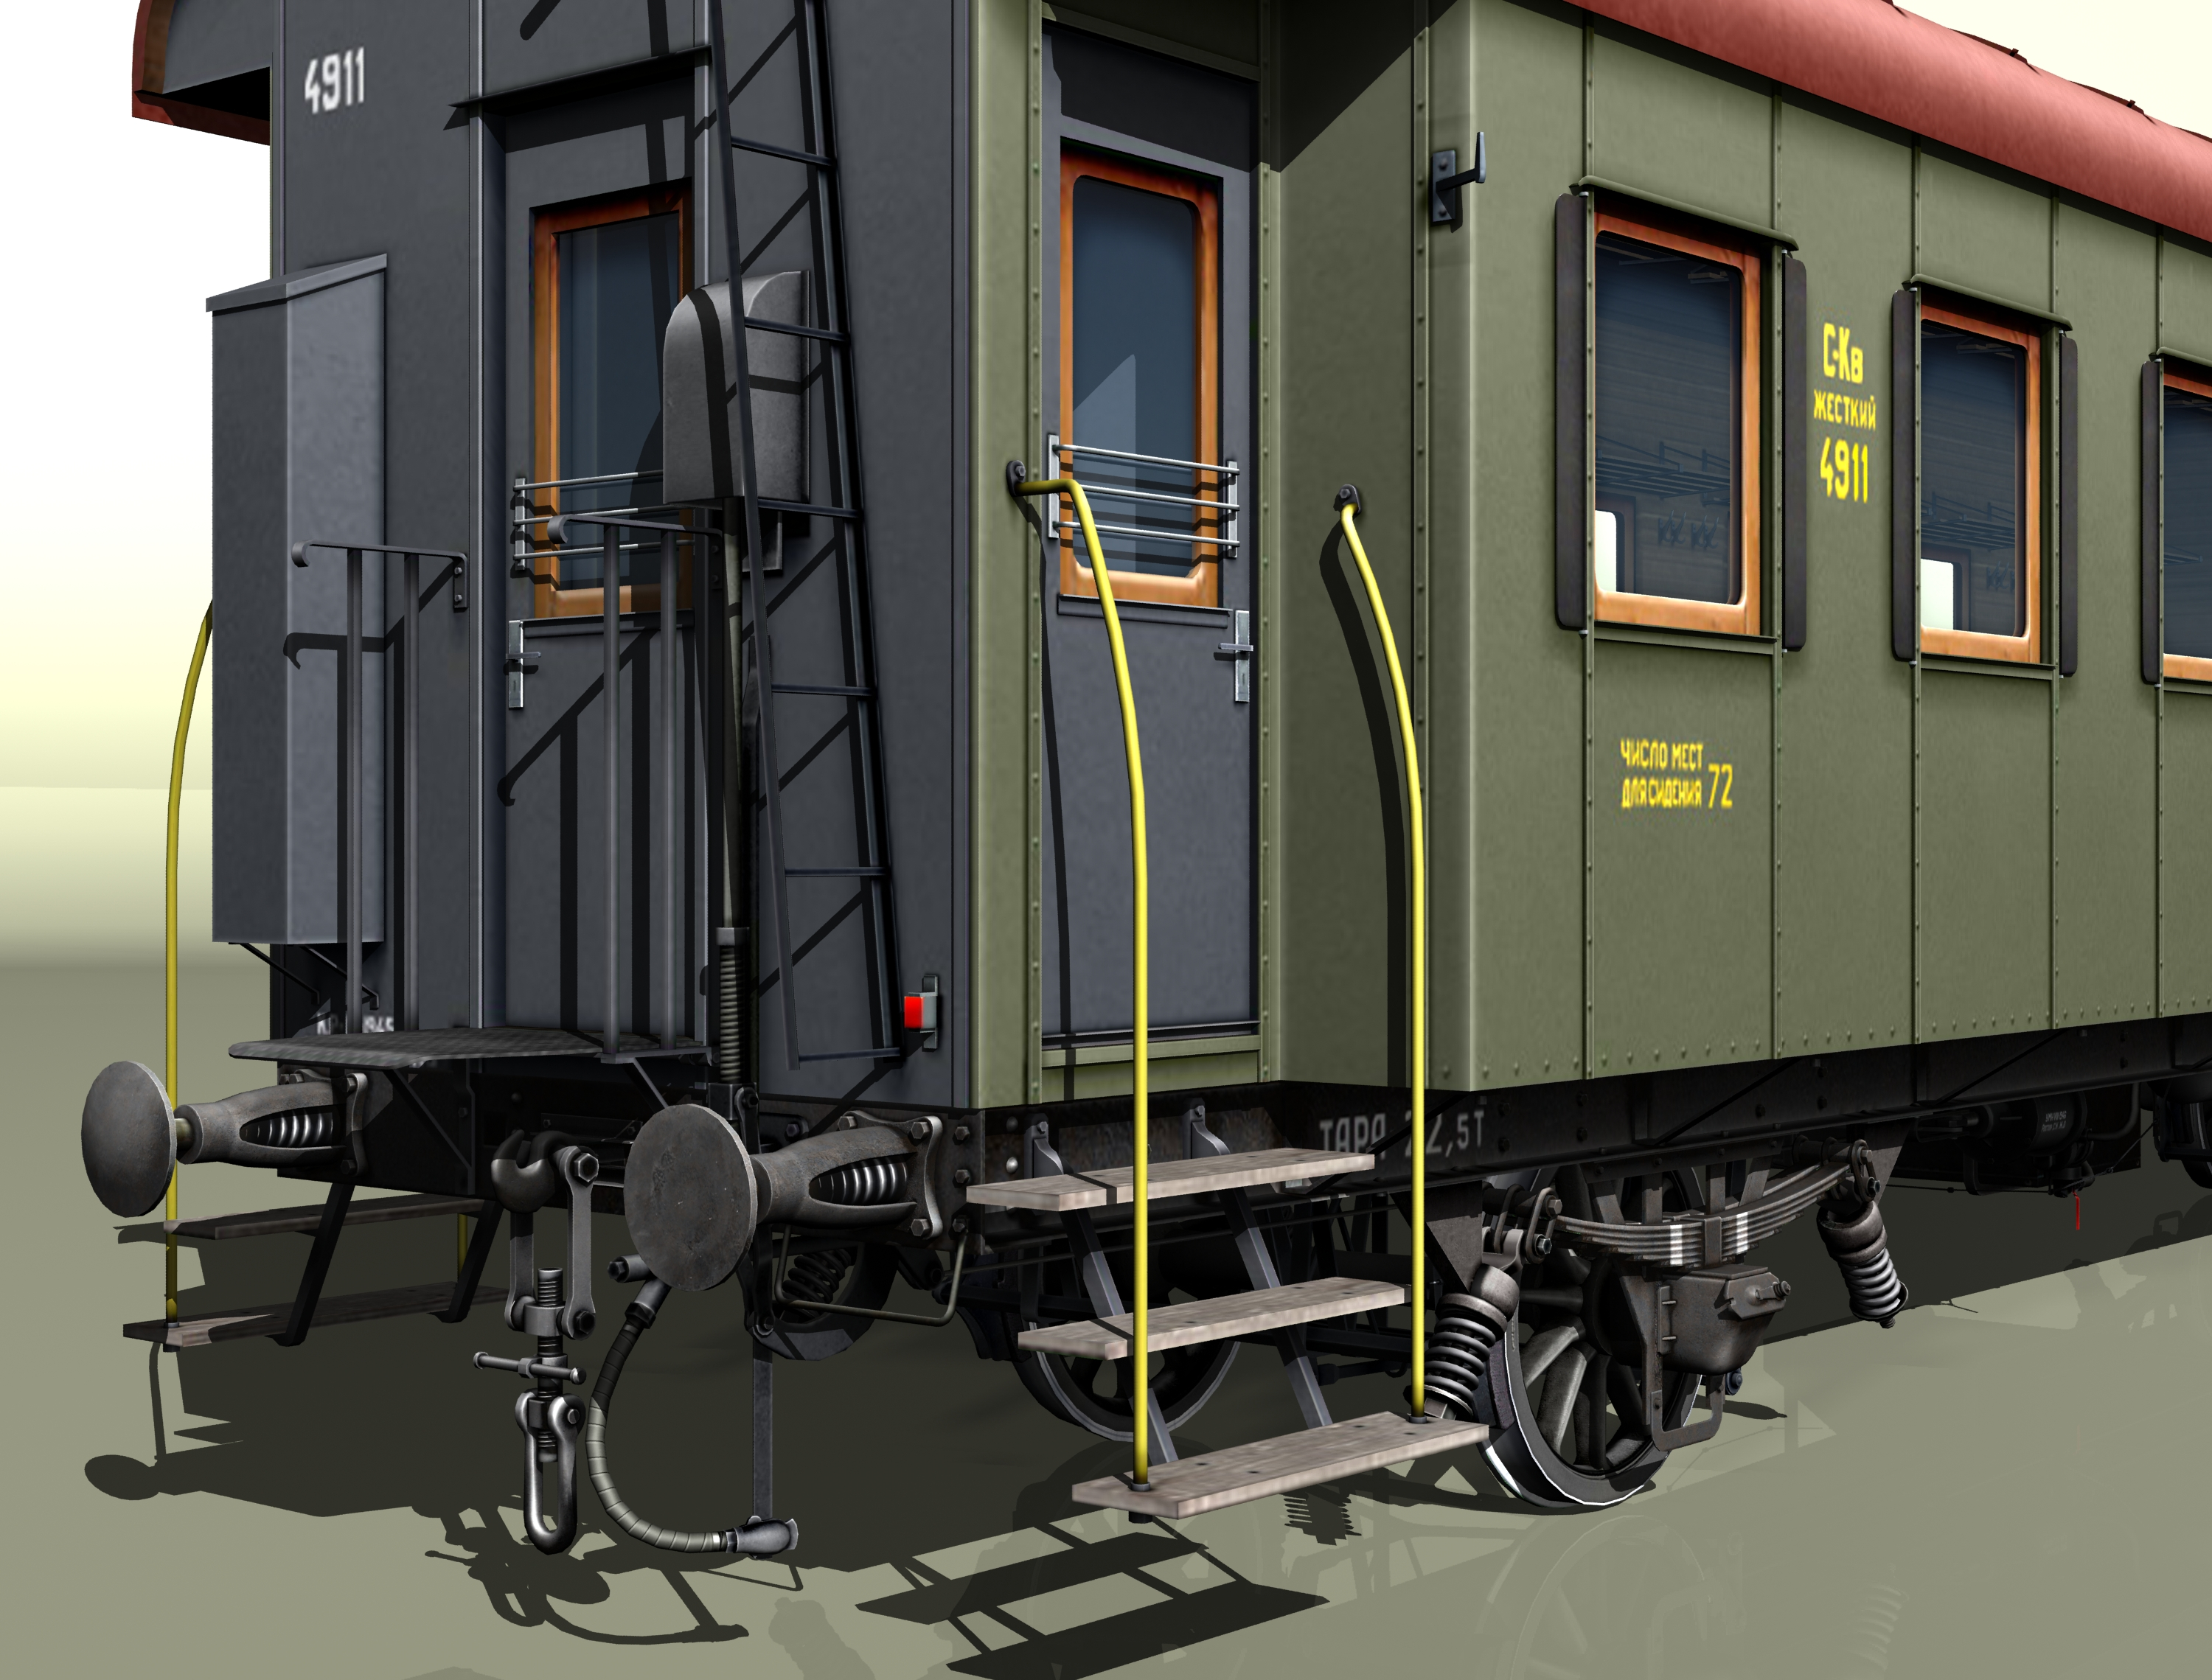 wagon passenger 2-axles 4911 3d model 3ds max fbx obj 213935